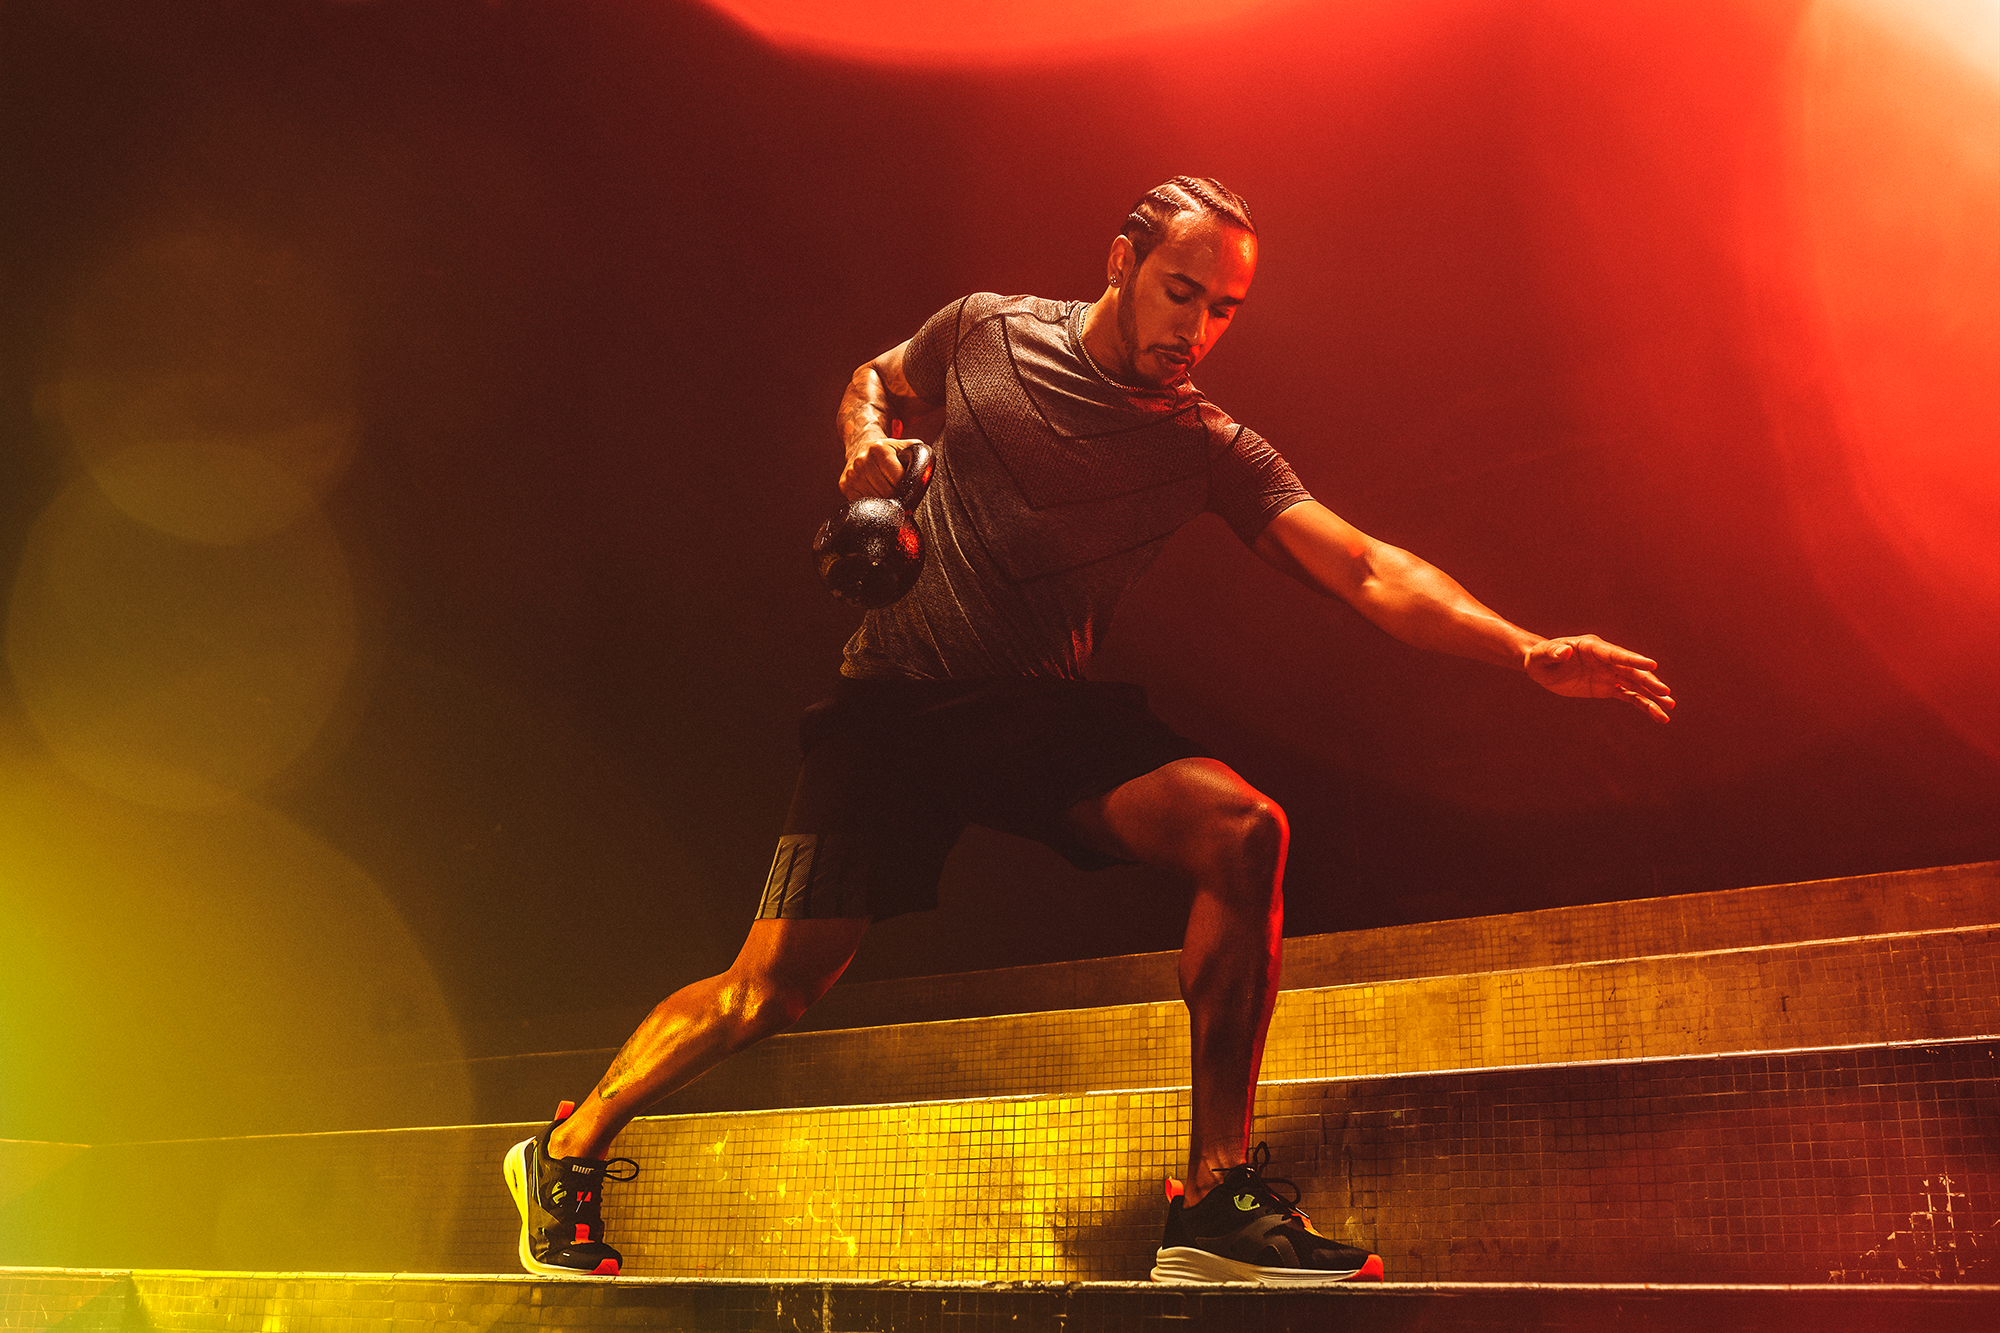 Lewis Hamilton, Formula 1 Champion. Working out with Kettle Bells. Puma Running and Training Hybrid.